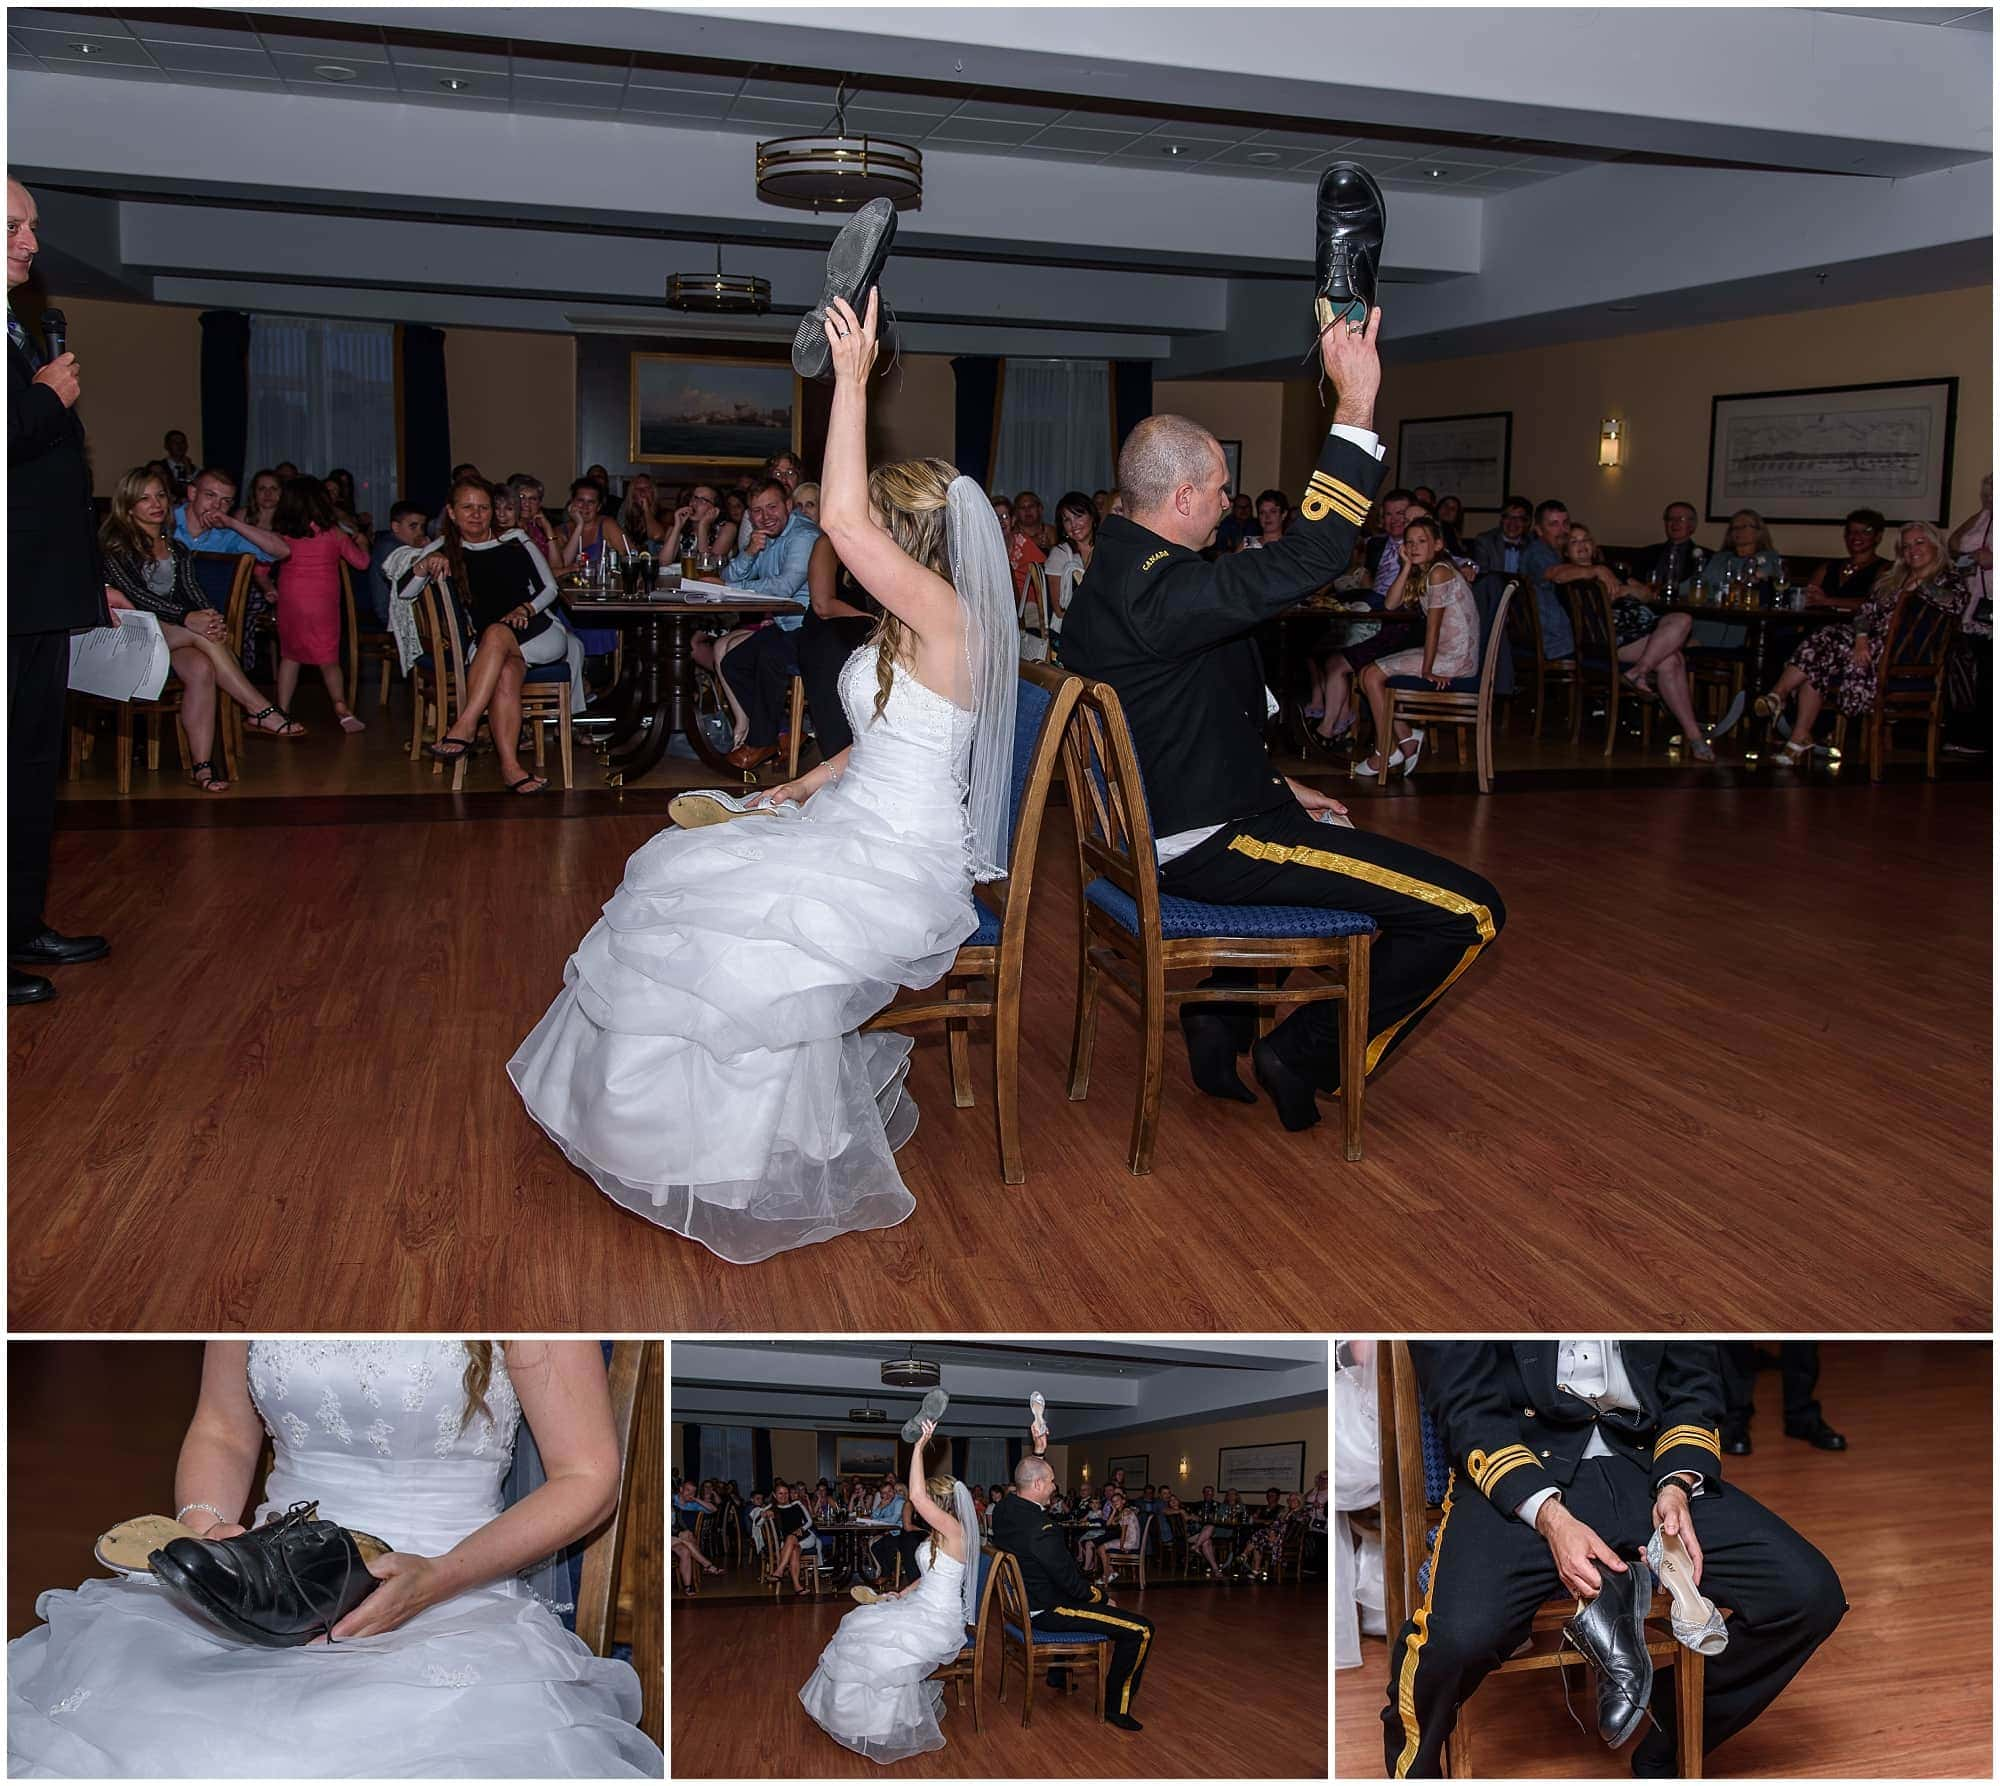 The bride and groom play the wedding shoe game during a wedding reception at Juno Tower in Halifax, NS.